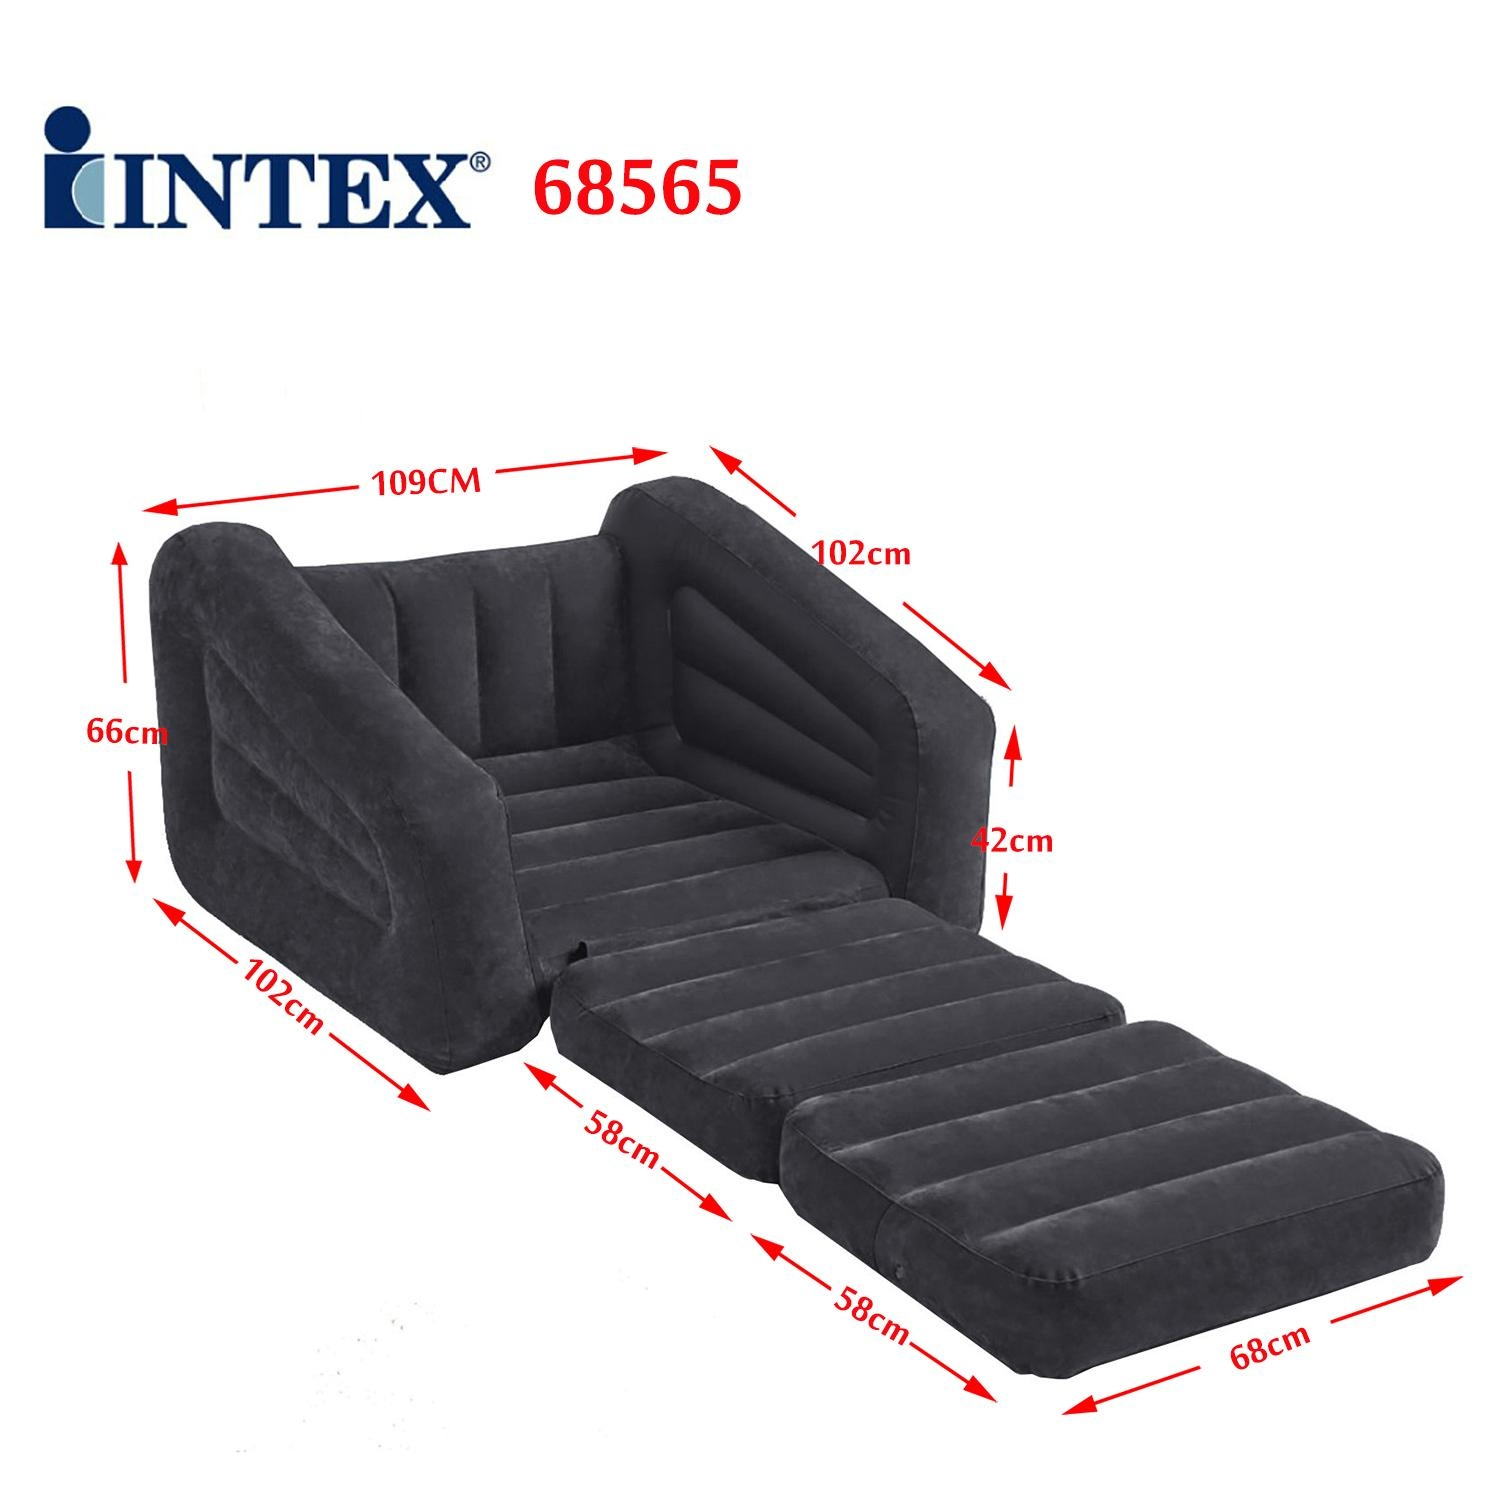 Intex Inflatable 1 Person Pull Out Chair Sofa Air Bed 68565   Ebay Within Intex Pull Out Chairs (View 17 of 20)